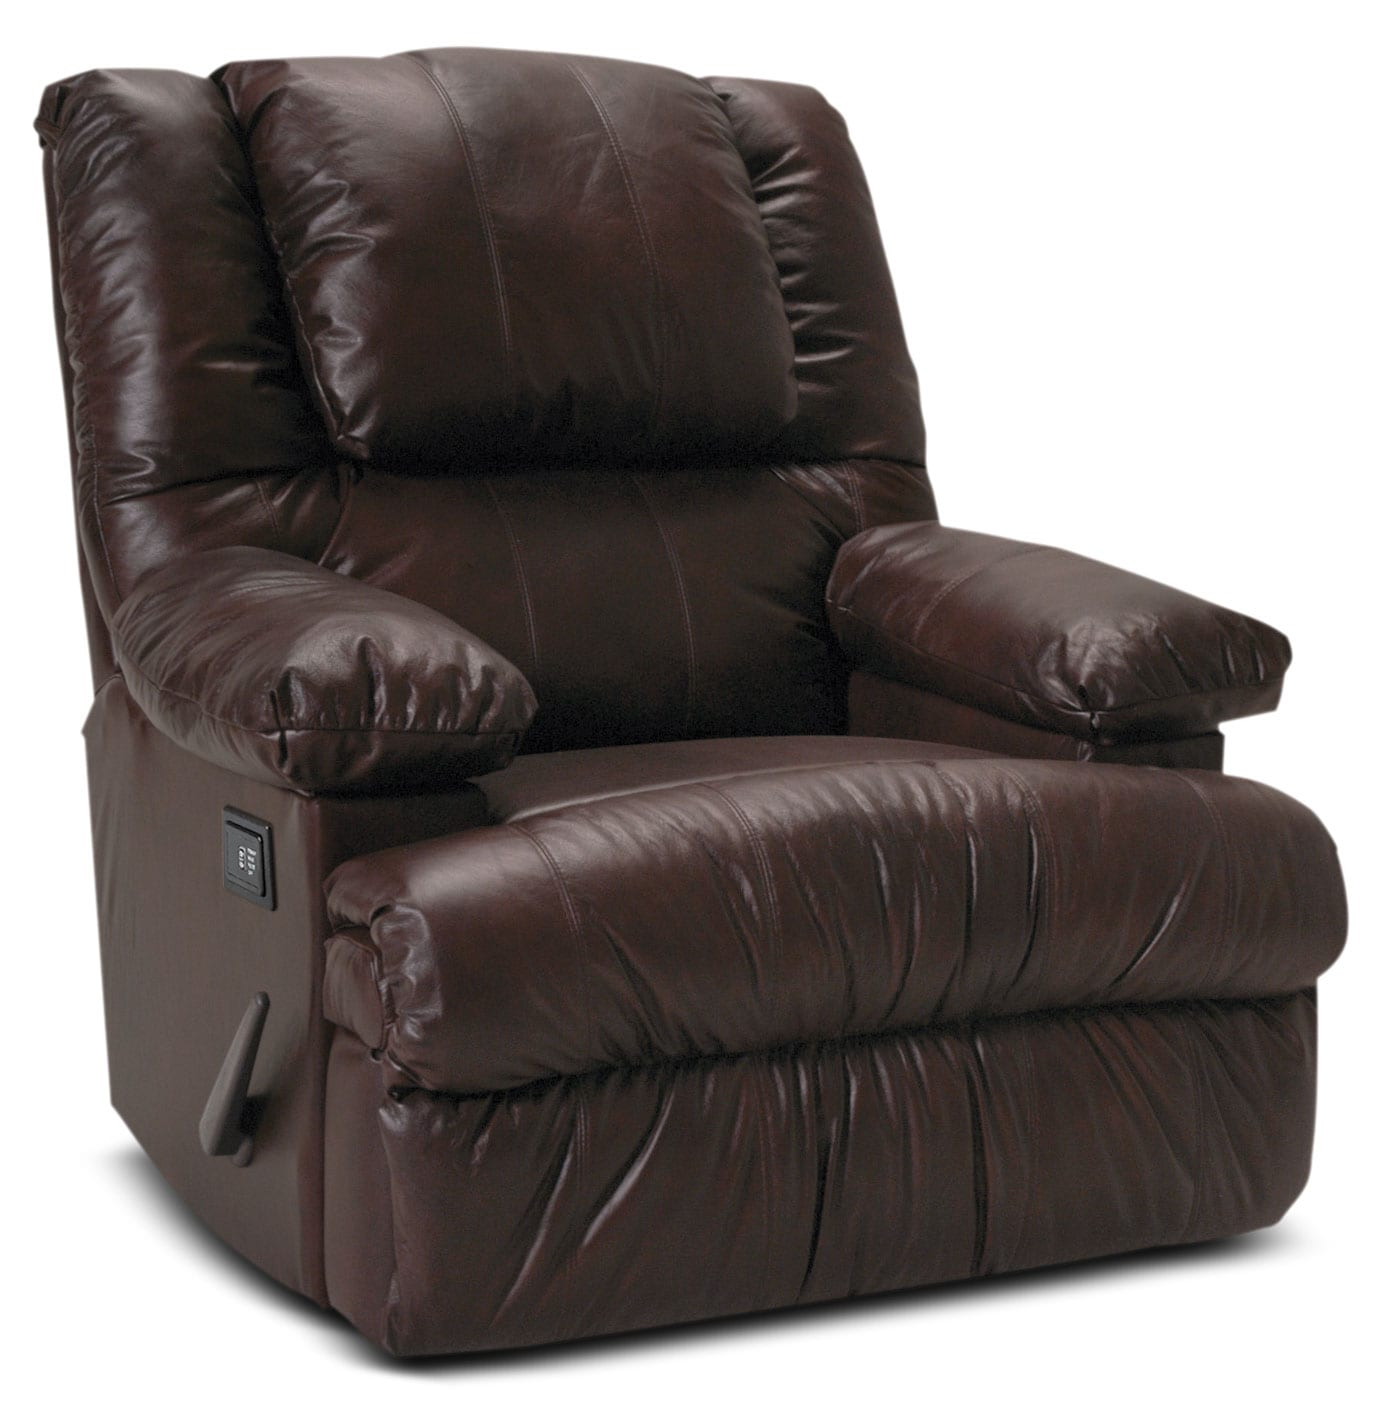 Designed2B Recliner 5598 Bonded Leather Massage Recliner with Storage Arms - Java